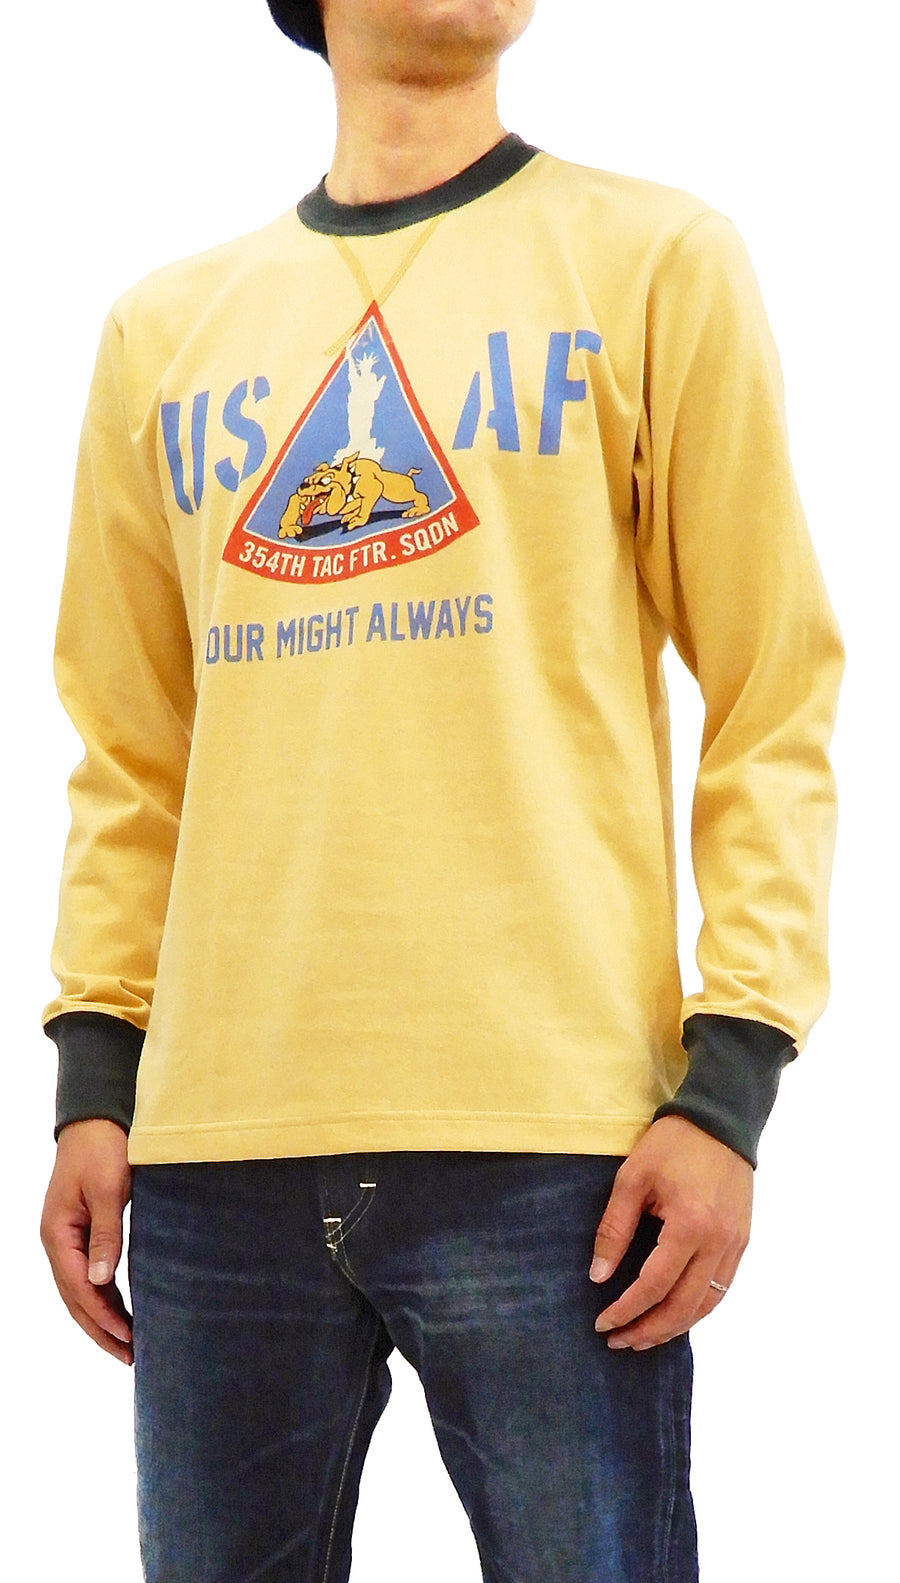 TOYS McCOY Men's Long Sleeve T-shirt US Air Force Military Tee TMC1853 Faded-Yellow